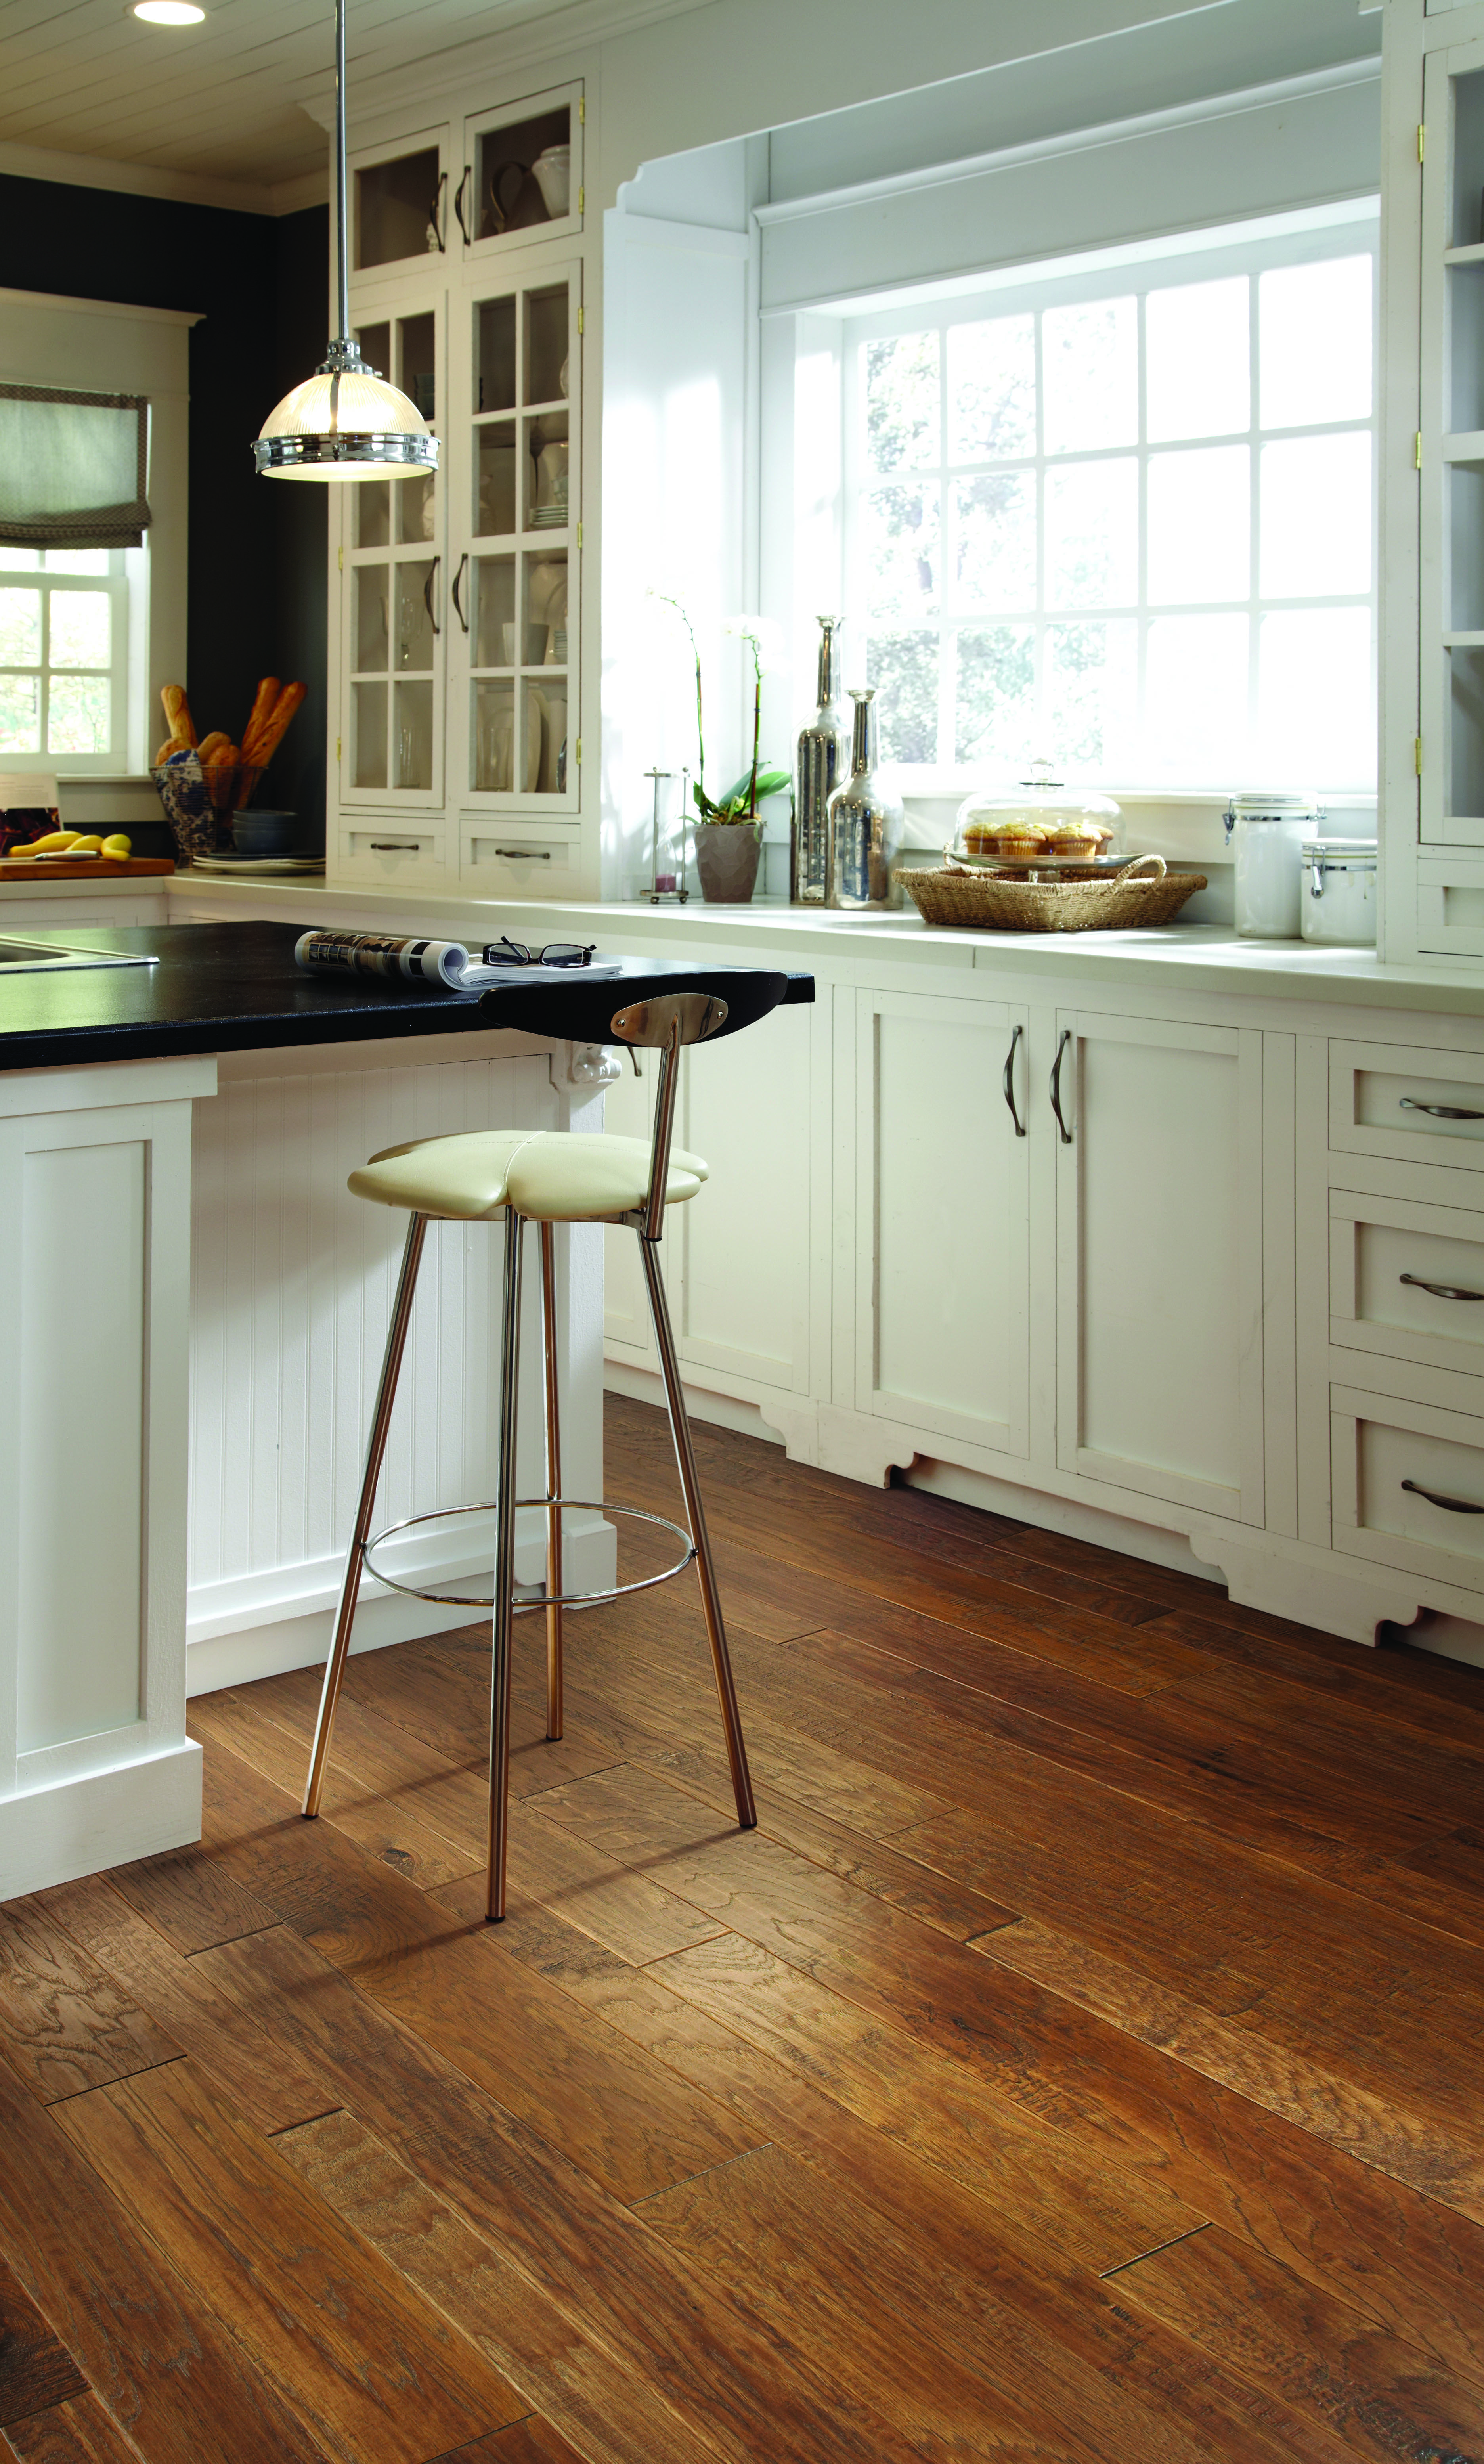 Flooring Hardwood Refinishing Showrooms In Mokena Il And Highland In Transitional Kitchen Design Kitchen Remodel Kitchen Flooring